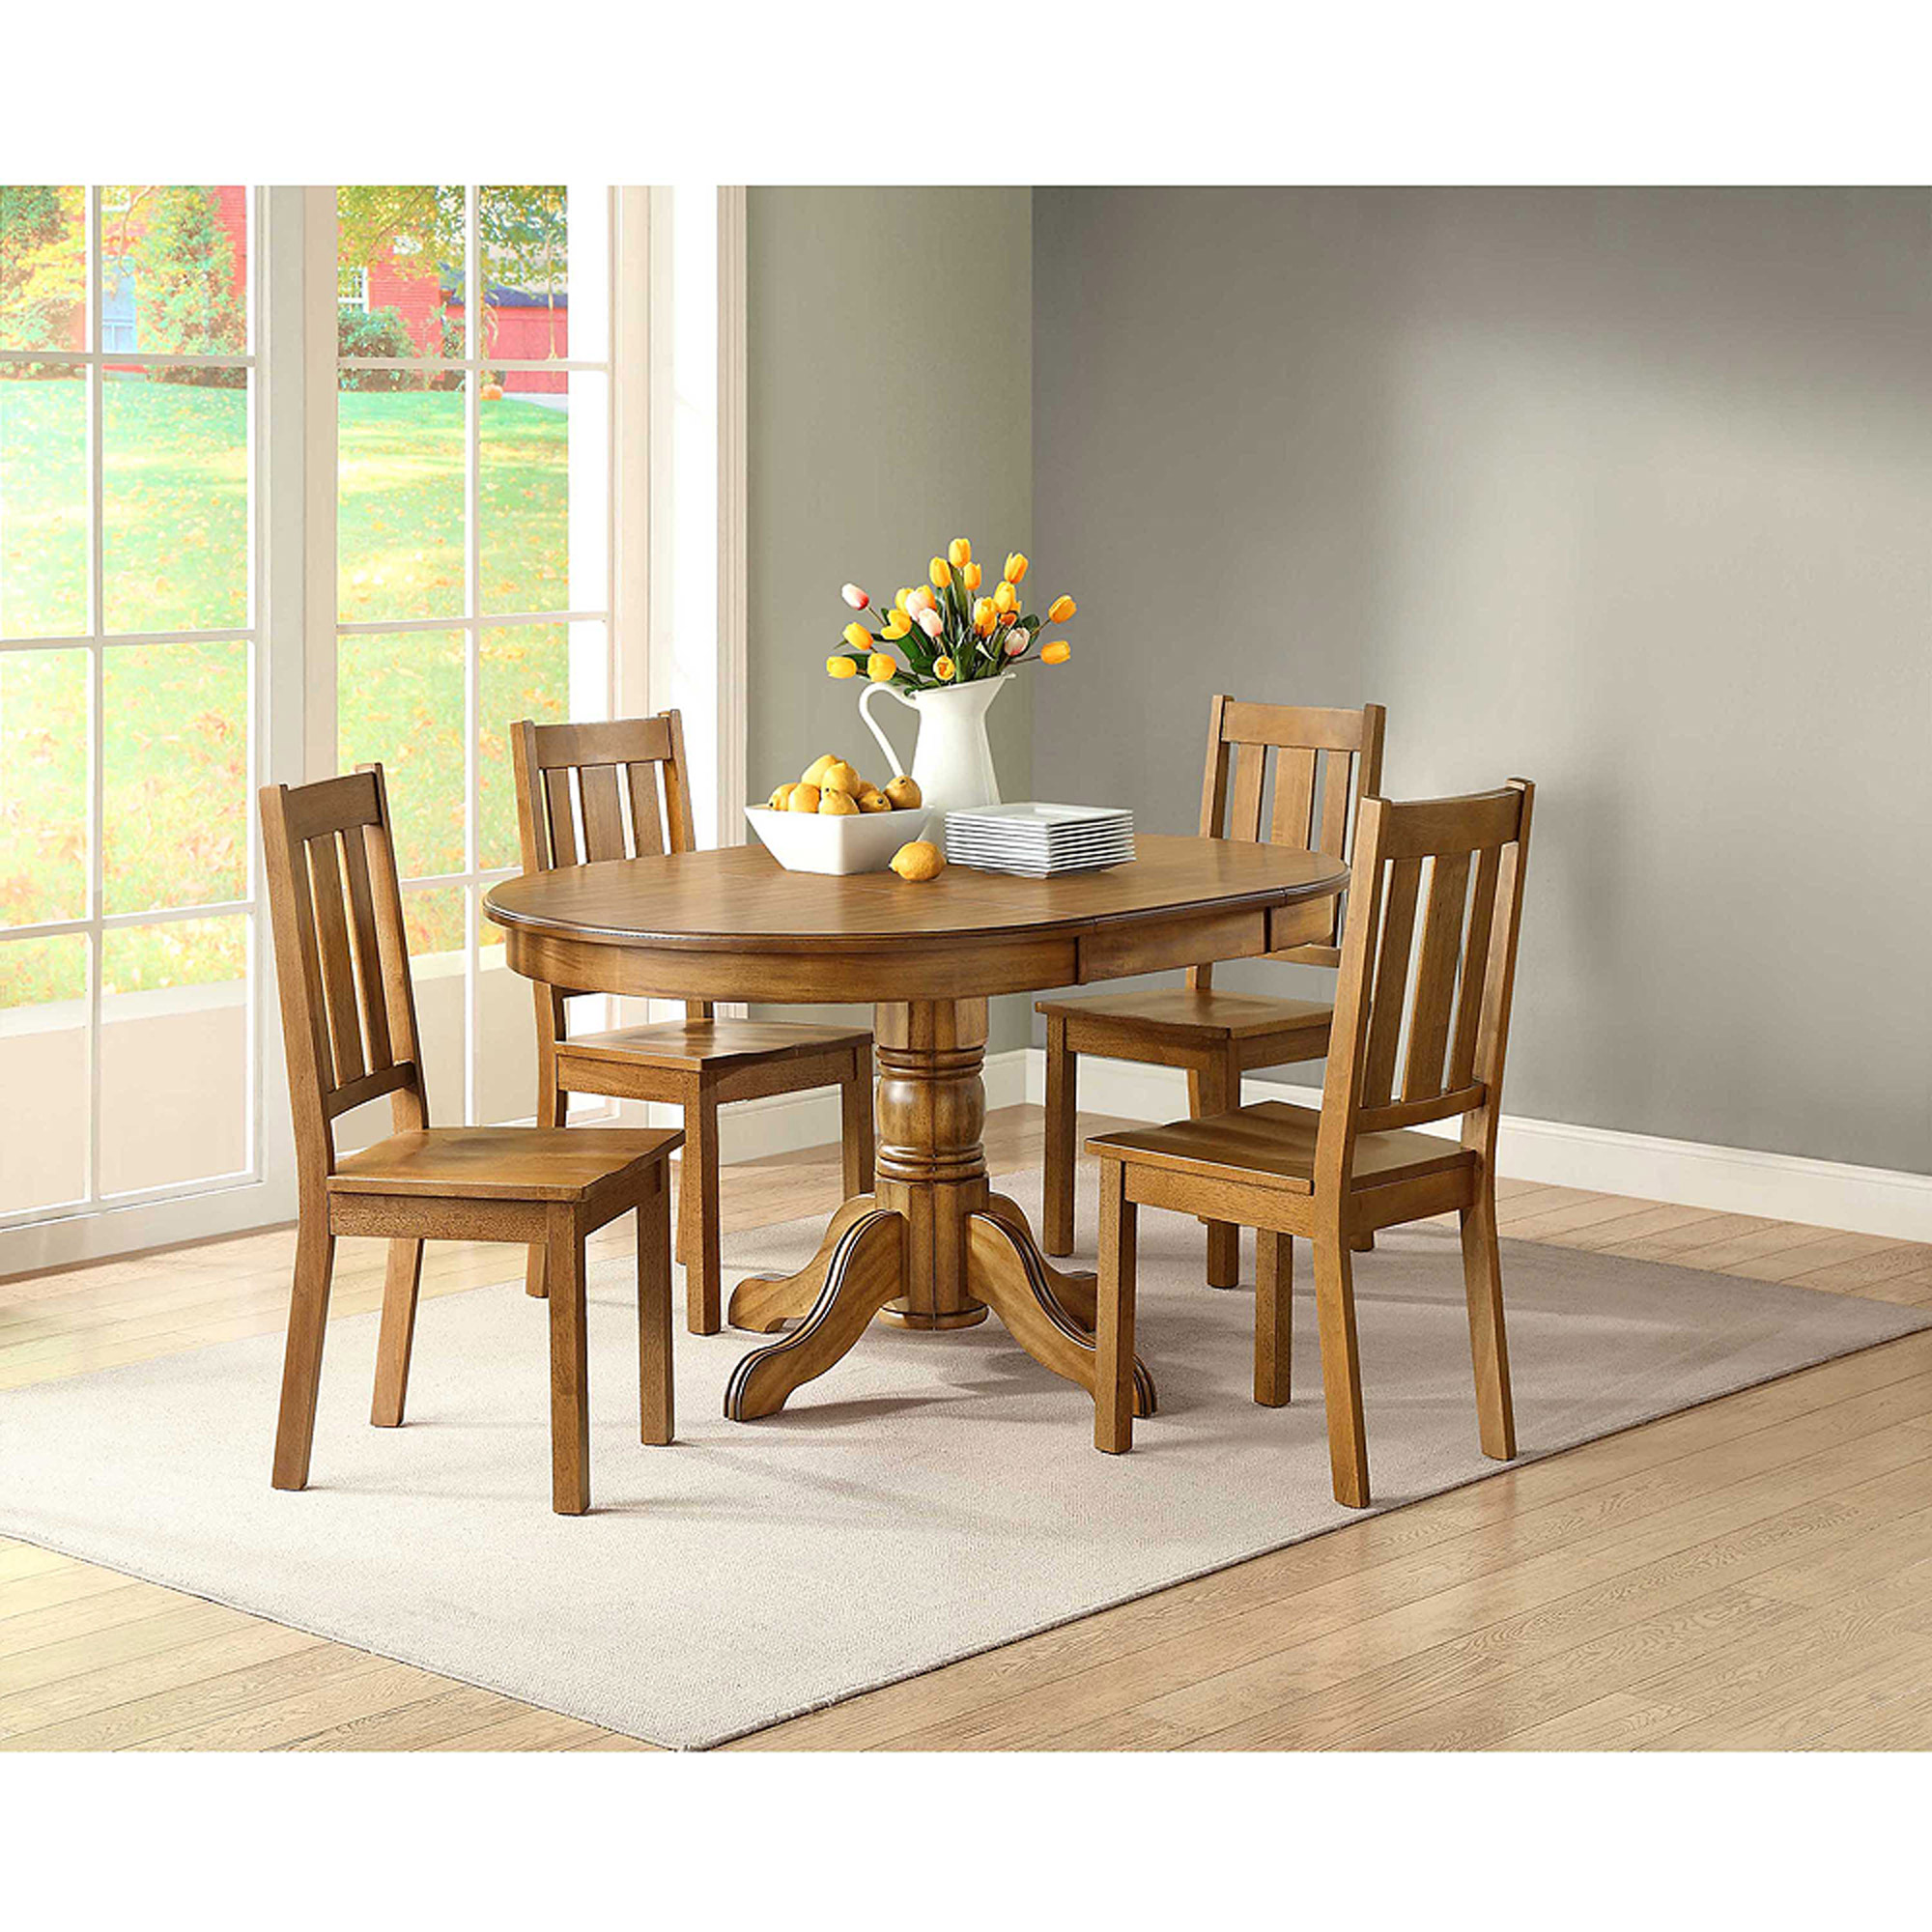 Dining Room Chair Sets Better Homes And Gardens Bankston Dining Chair Set Of 2 Mocha